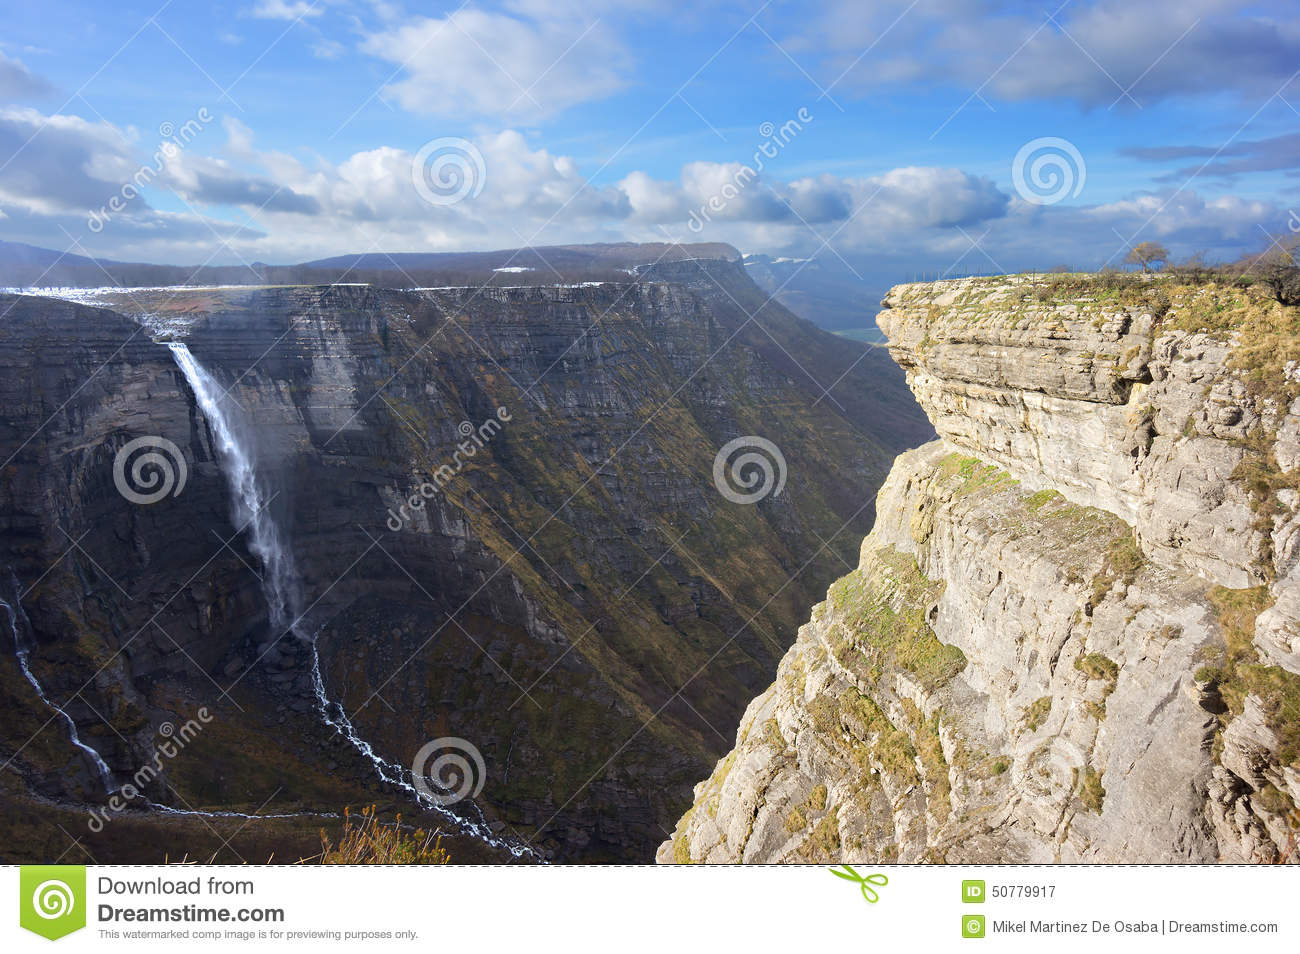 Nervion River Source And Waterfall Stock Photo - Image: 50779917